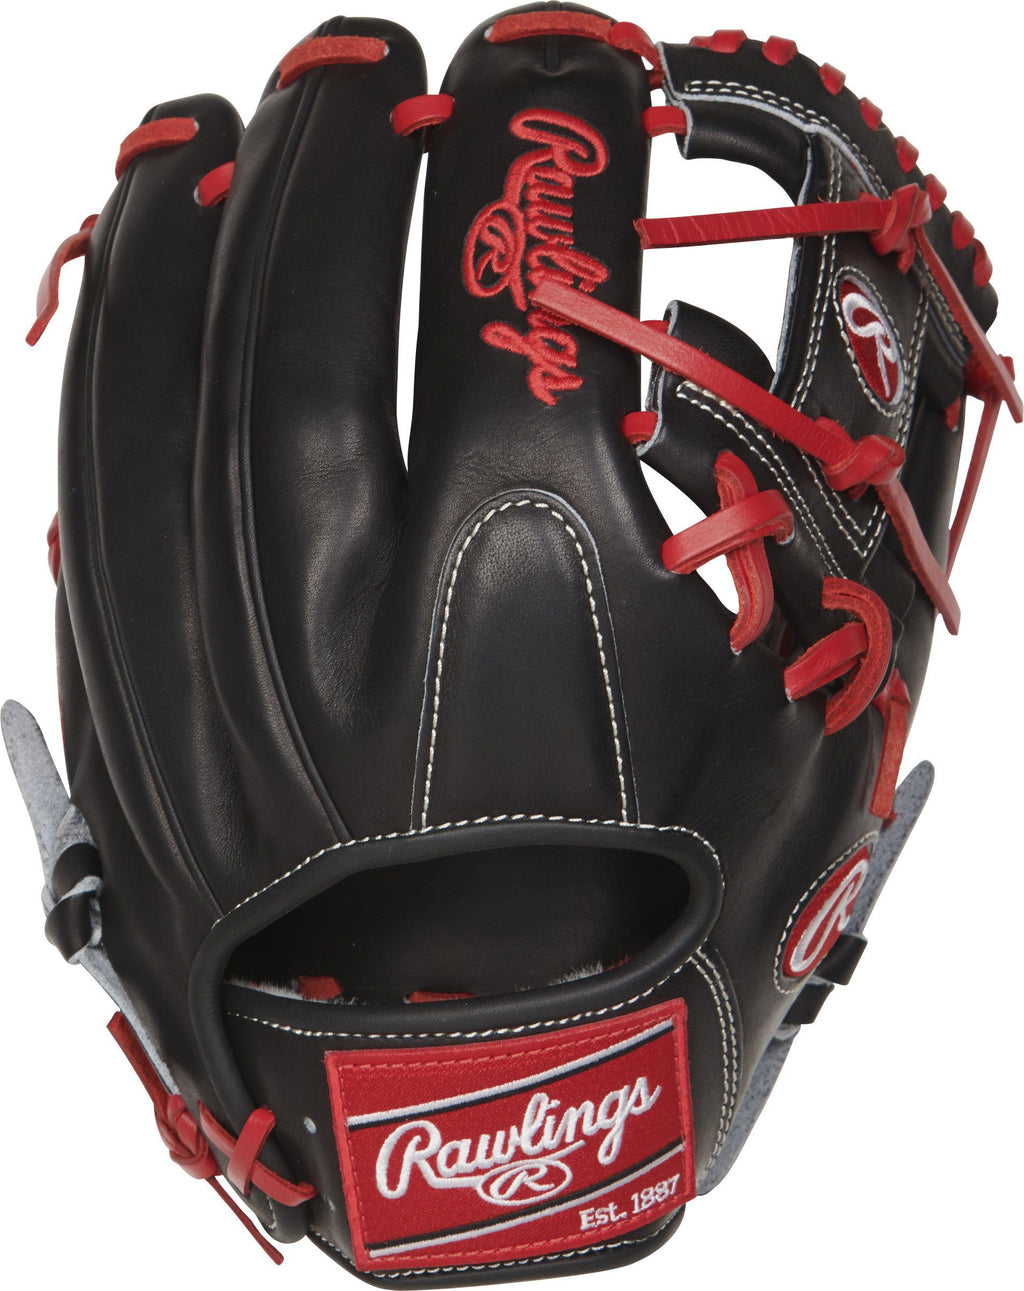 "2018 Rawlings Pro Preferred 11.75"" Francisco Lindor Baseball Glove: PROSFL12 at headbangersports.com"